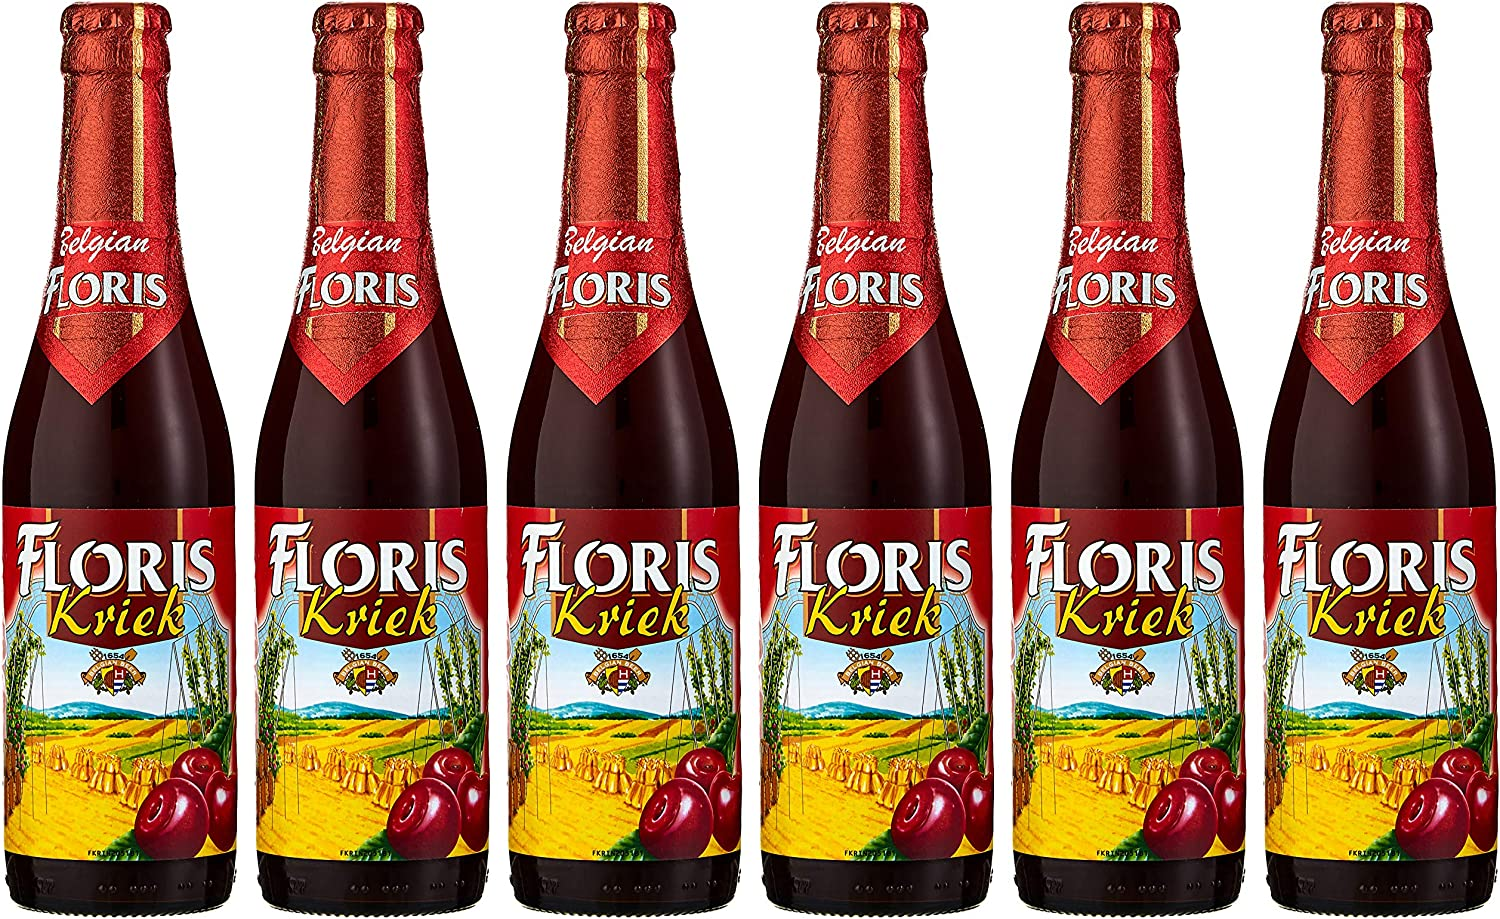 Floris Kriek Cherry Beer, 6 x 330 ml: Amazon.co.uk: Grocery